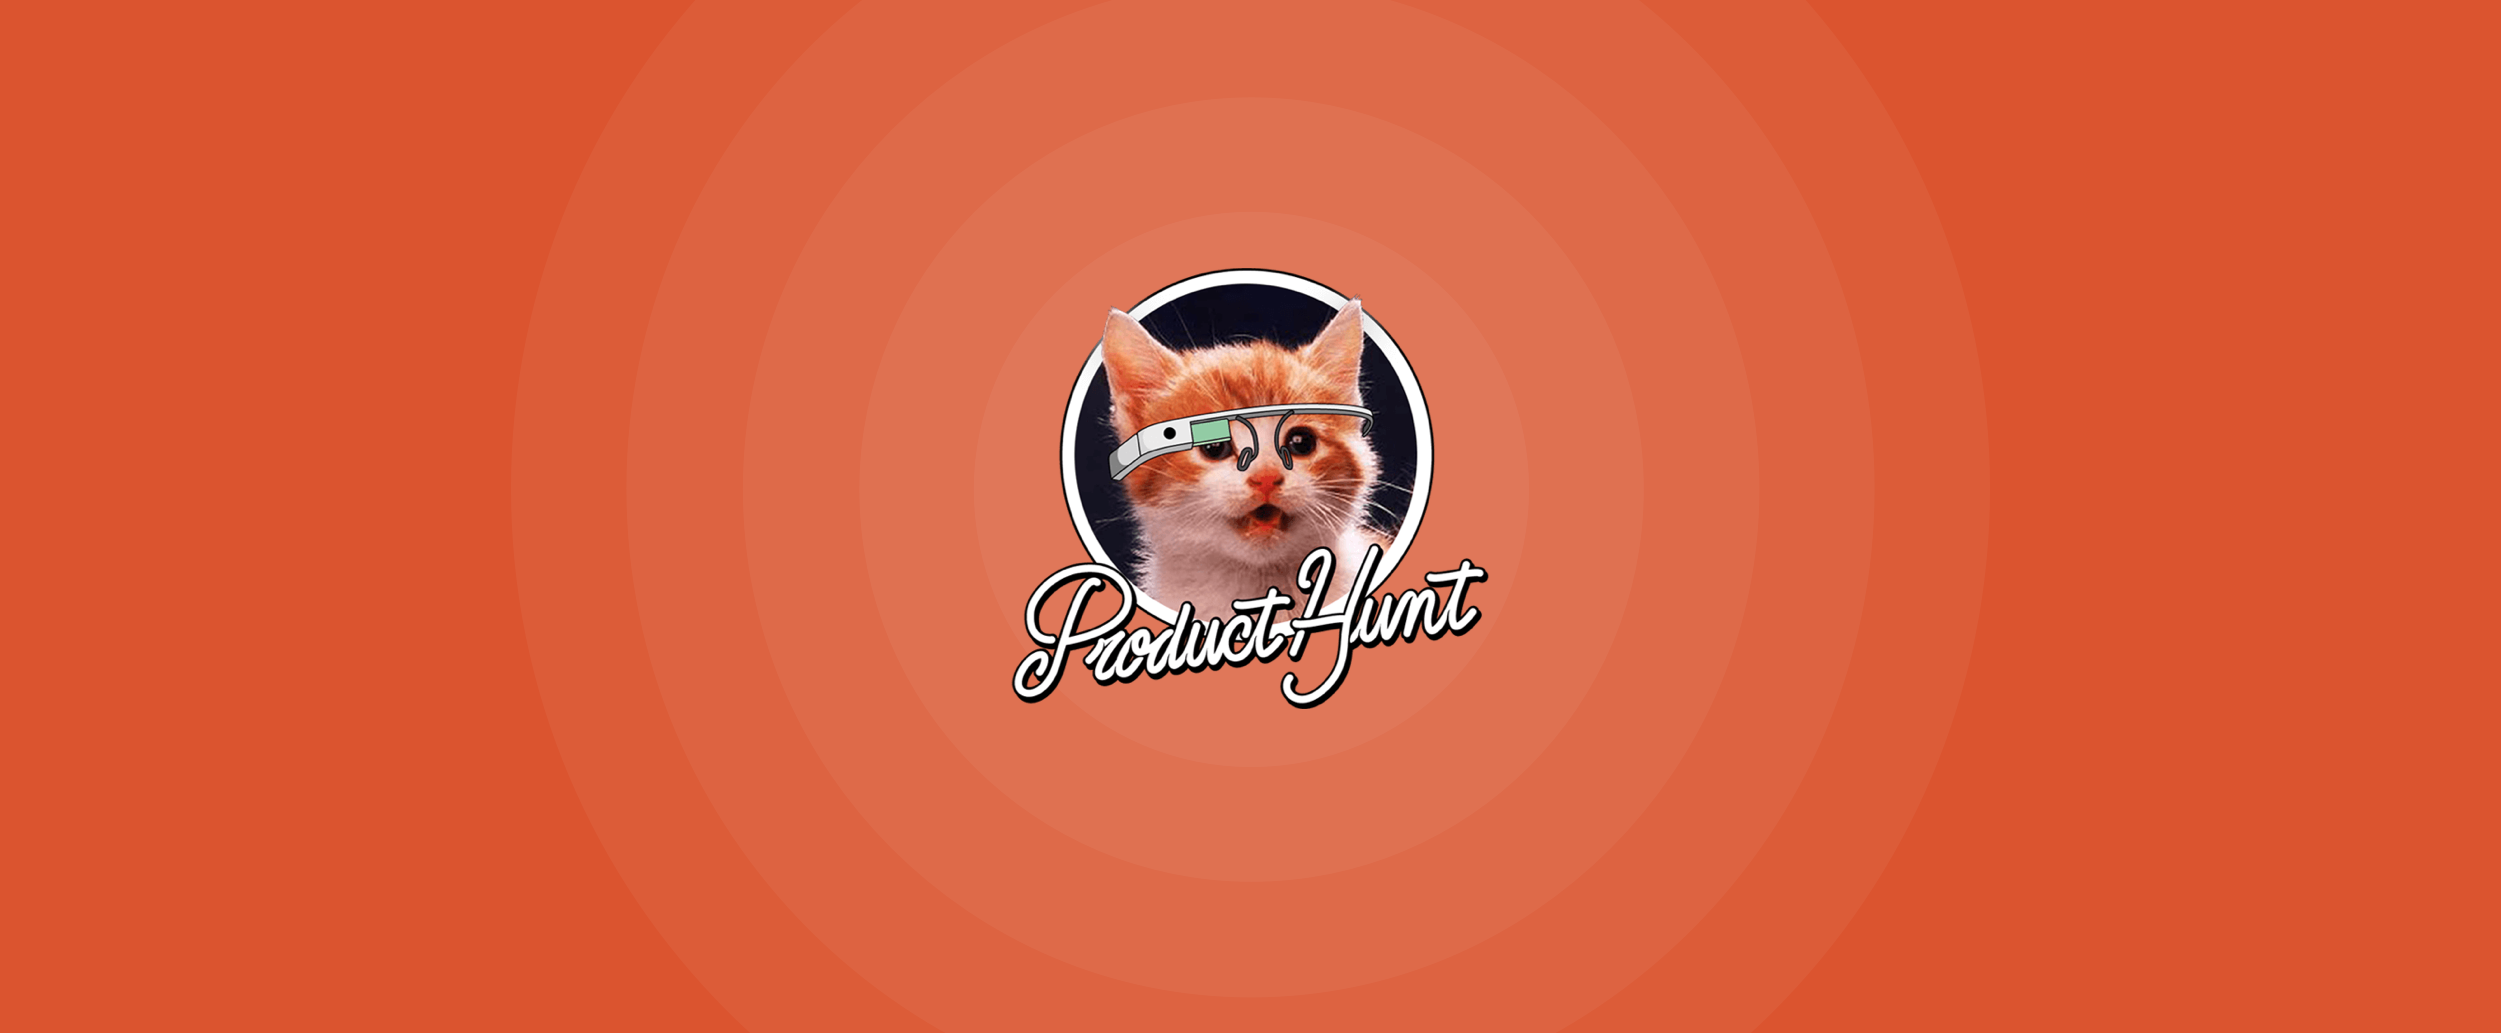 Product Hunt 101: How To Launch Your Product From Early Idea To Revenue